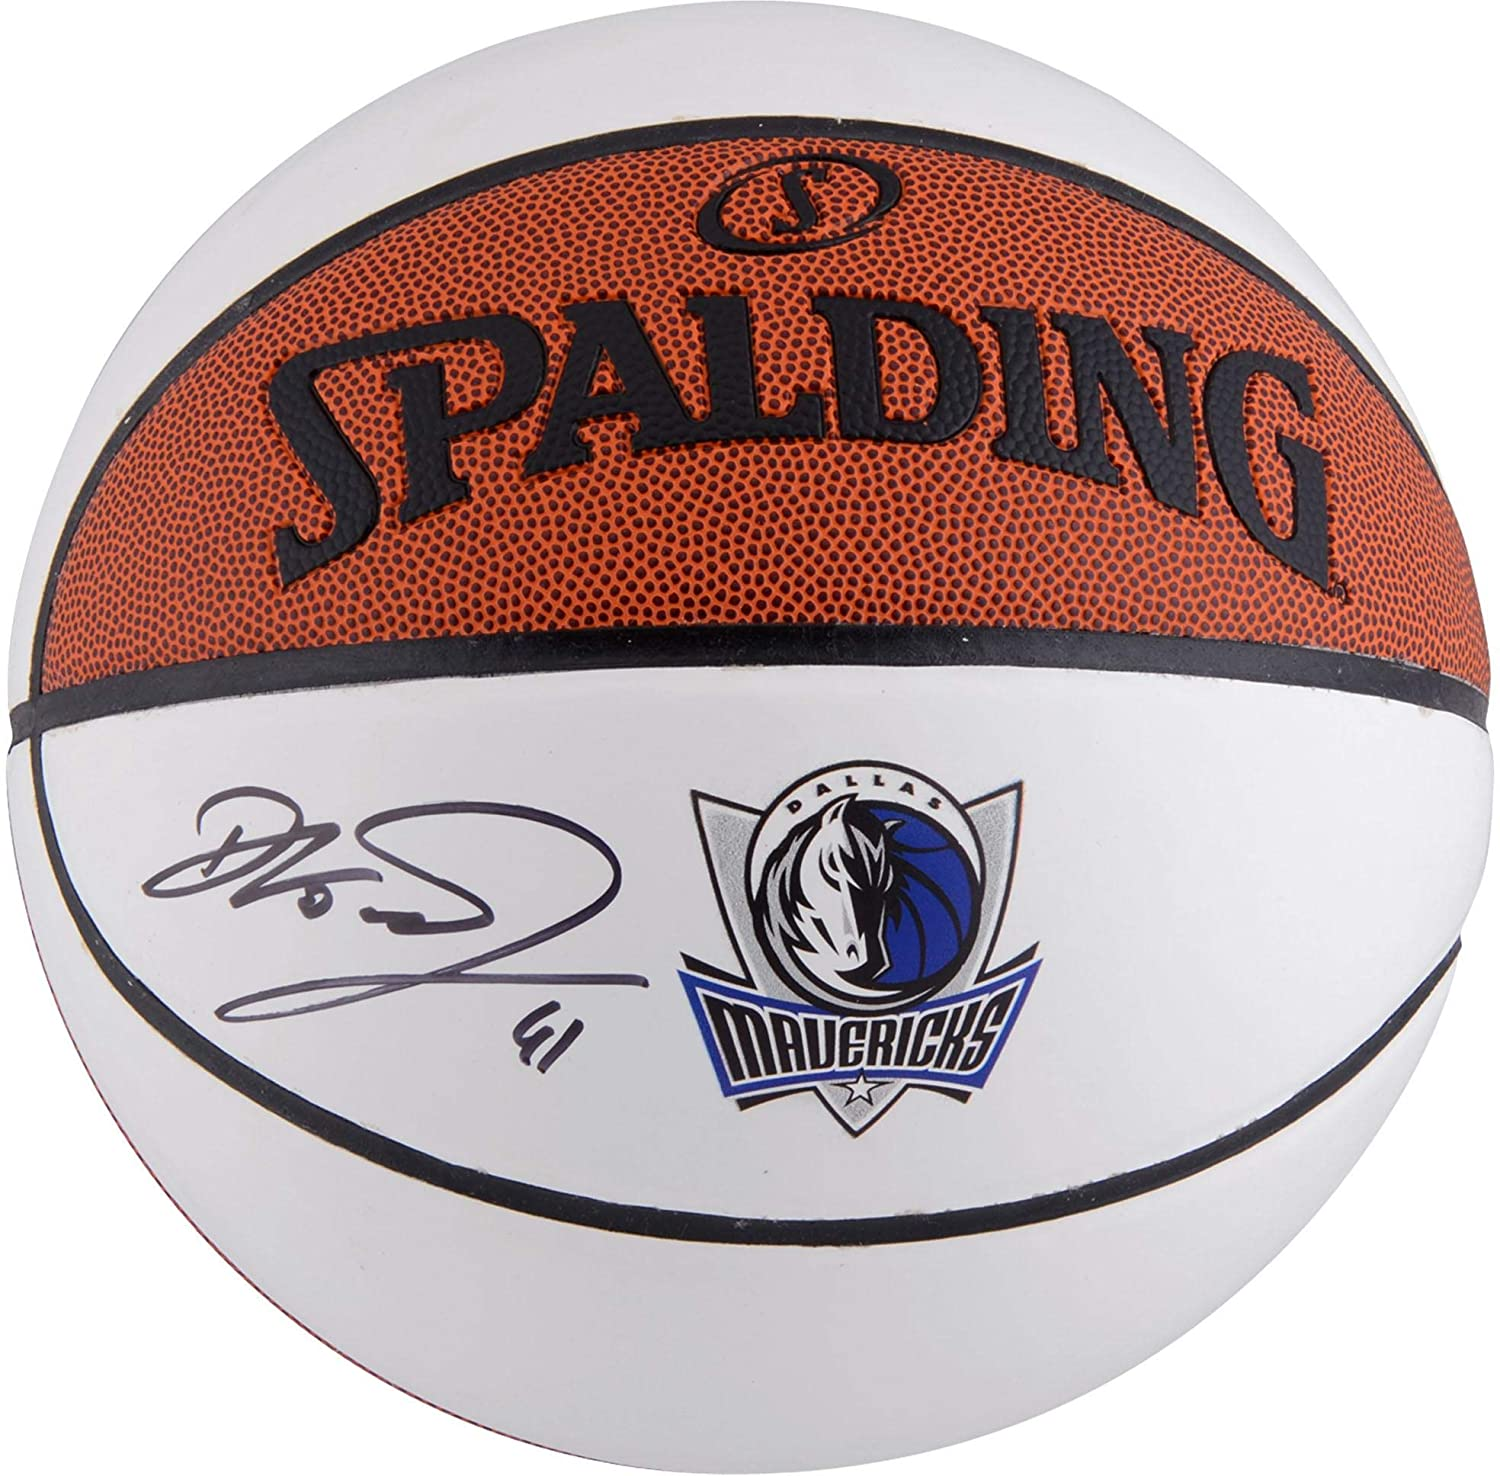 Dirk Nowitzki Dallas Mavericks Autographed Spalding White Panel Basketball - Fanatics Authentic Certified